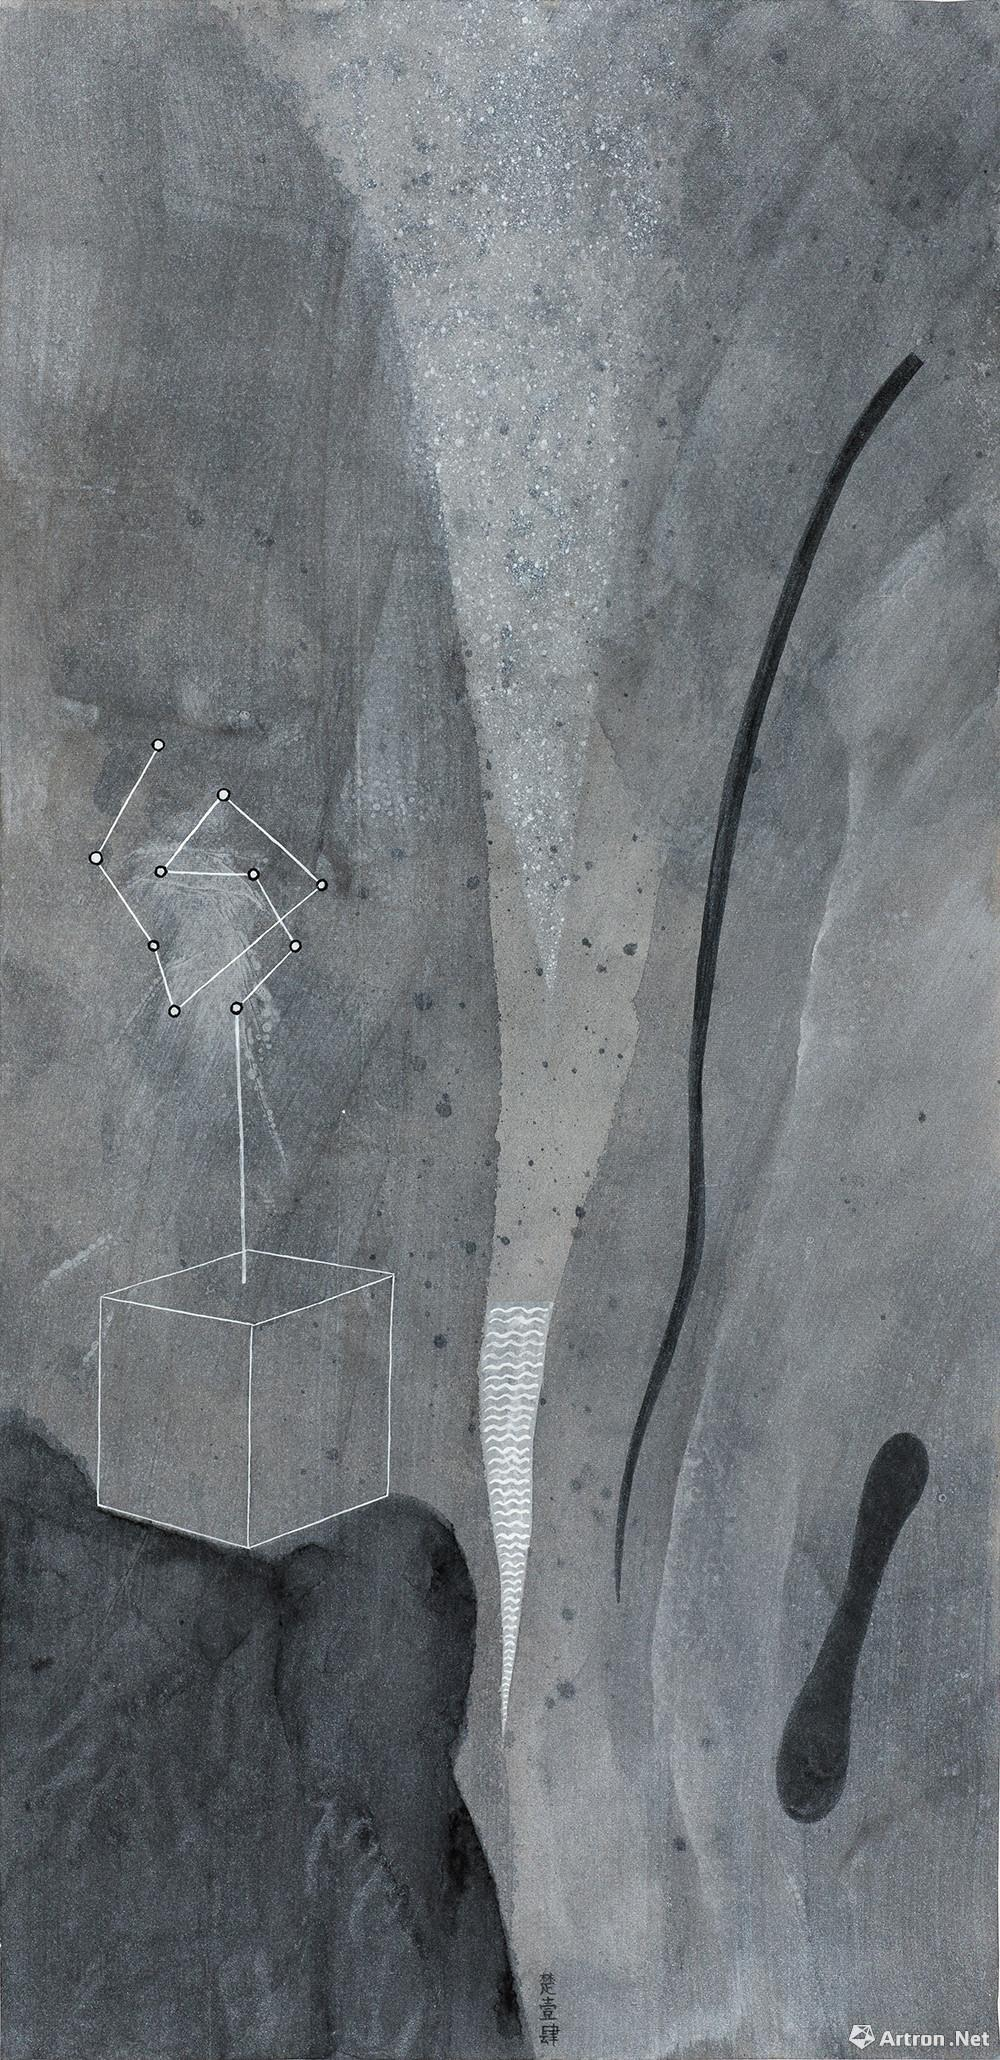 王伊楚 Wang Yichu 素之六 Plain No.6 2014 纸本综合材料 Mixed media on paper 69×33.5cm